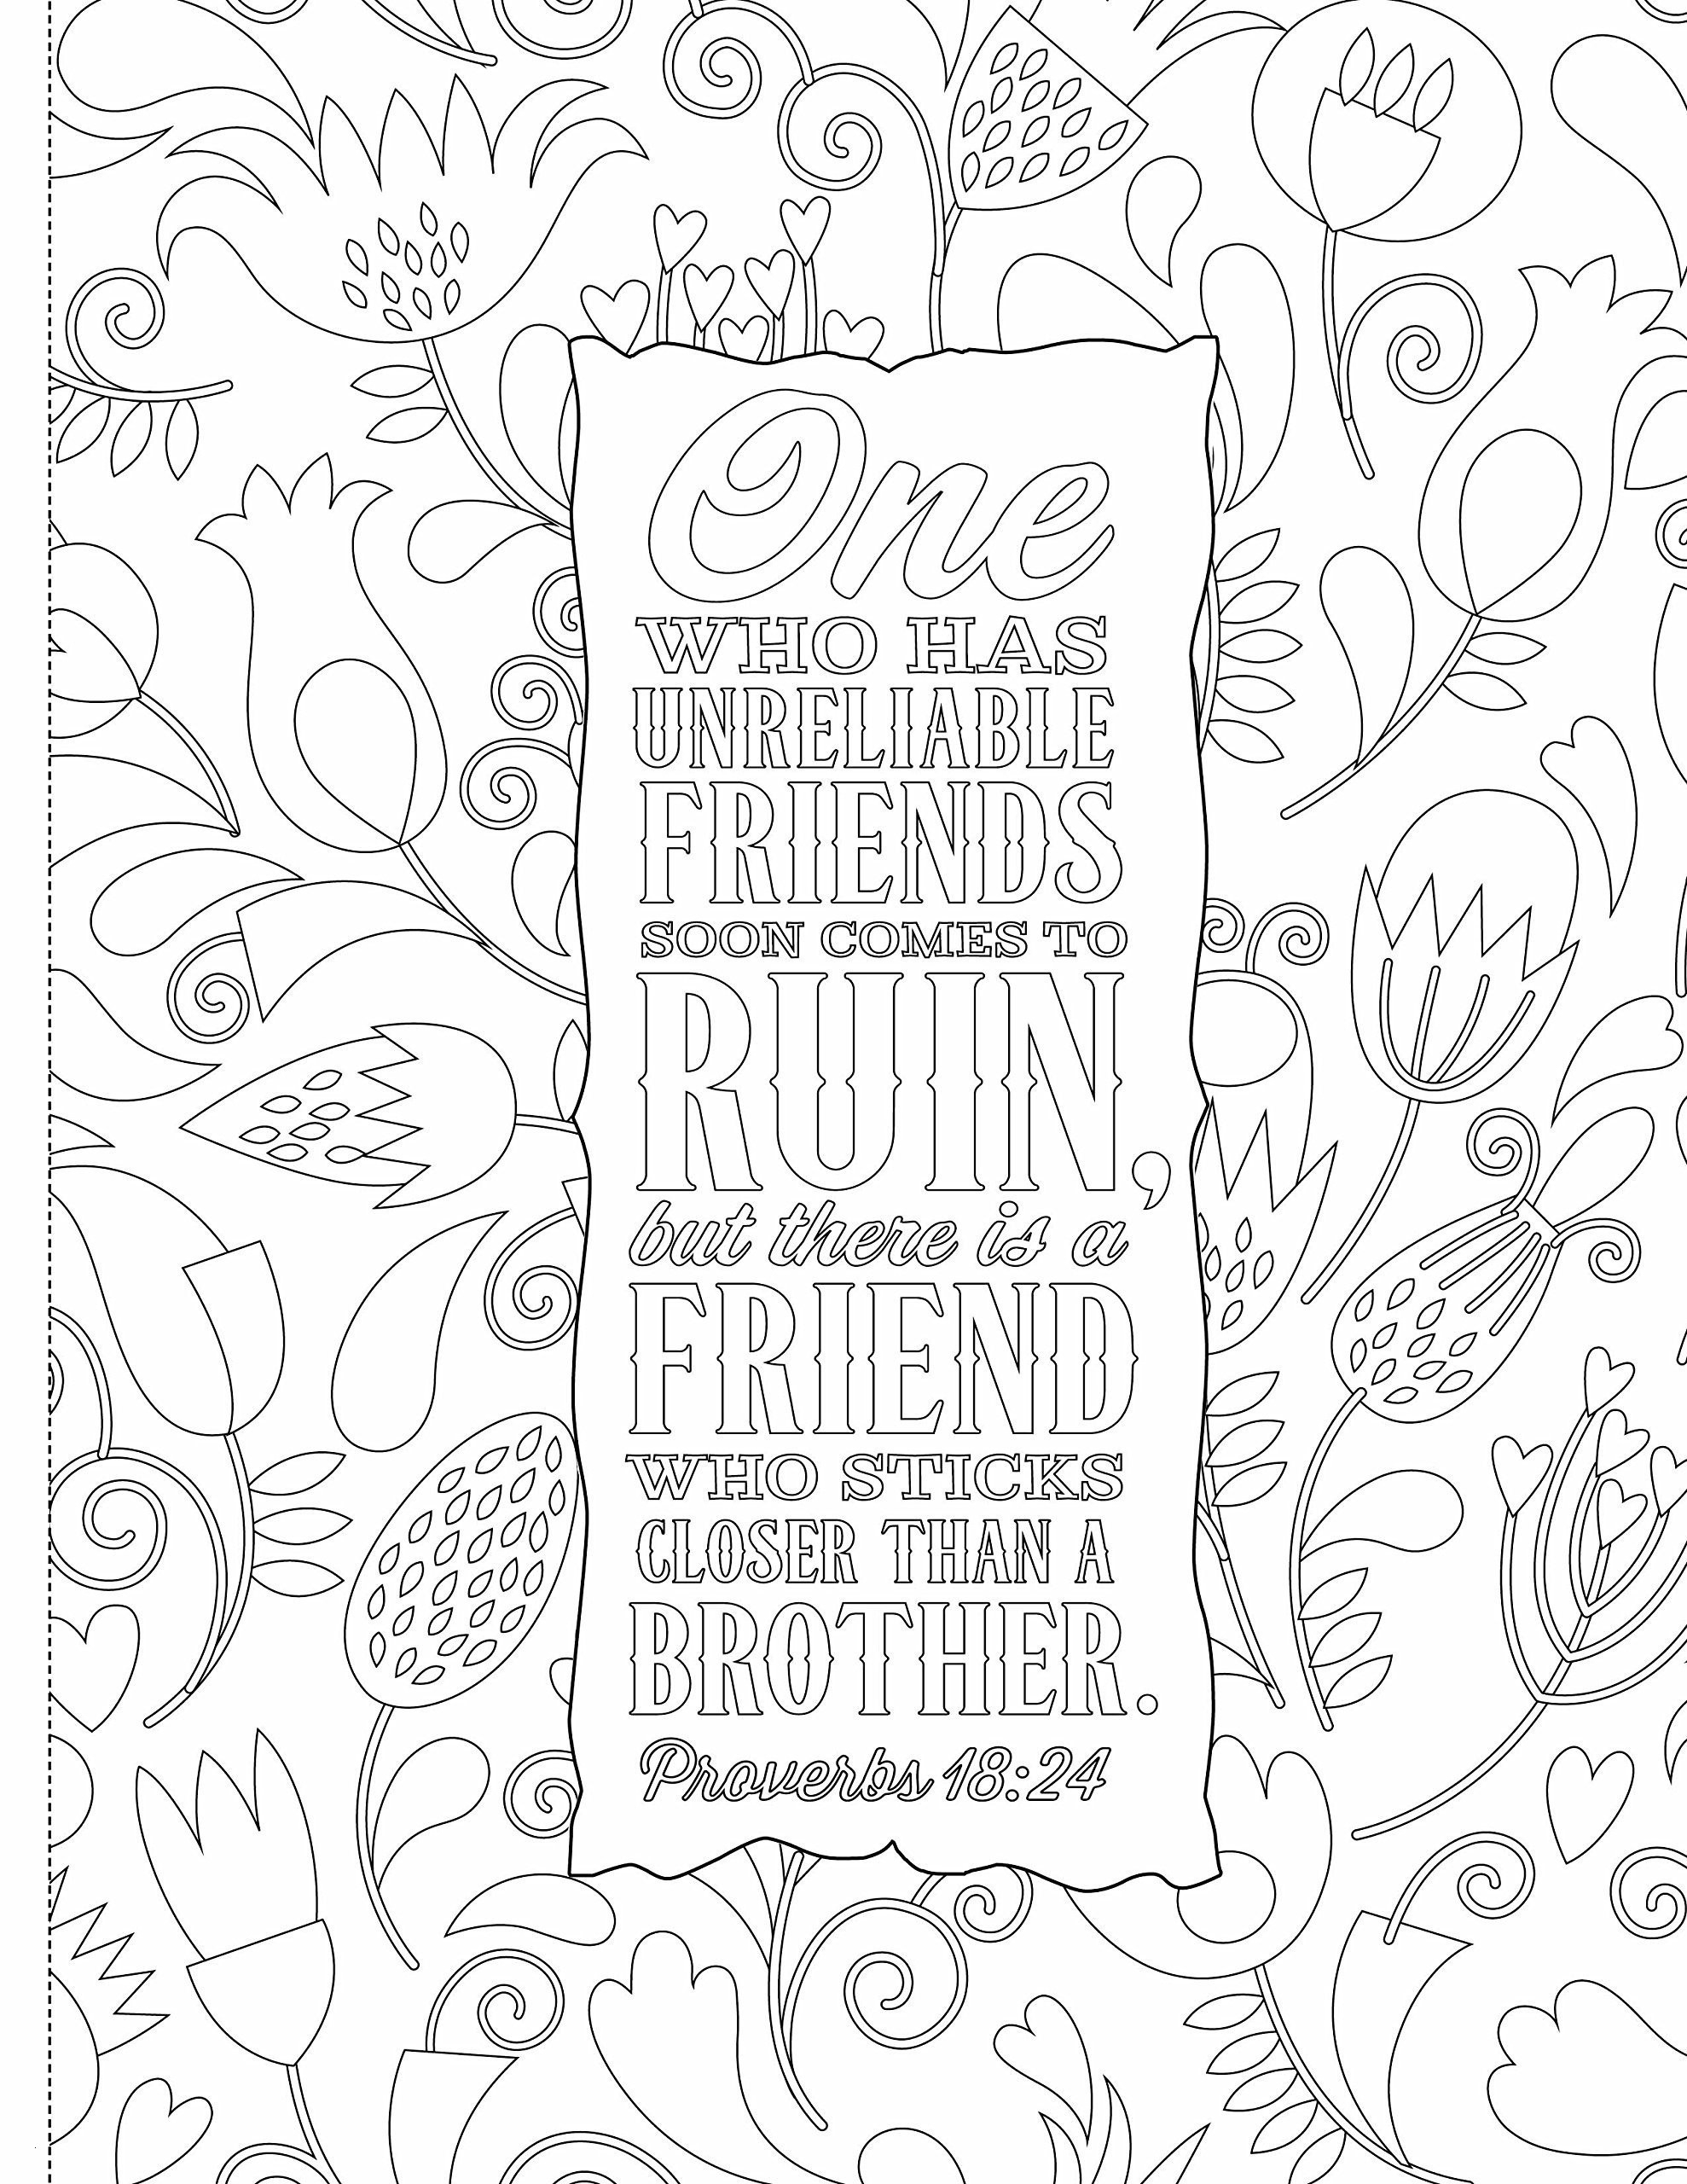 folk art coloring pages Download-Folk Art Coloring Pages 34 Lovely Free Printable Scripture Coloring Pages Cloud9vegas 4-n